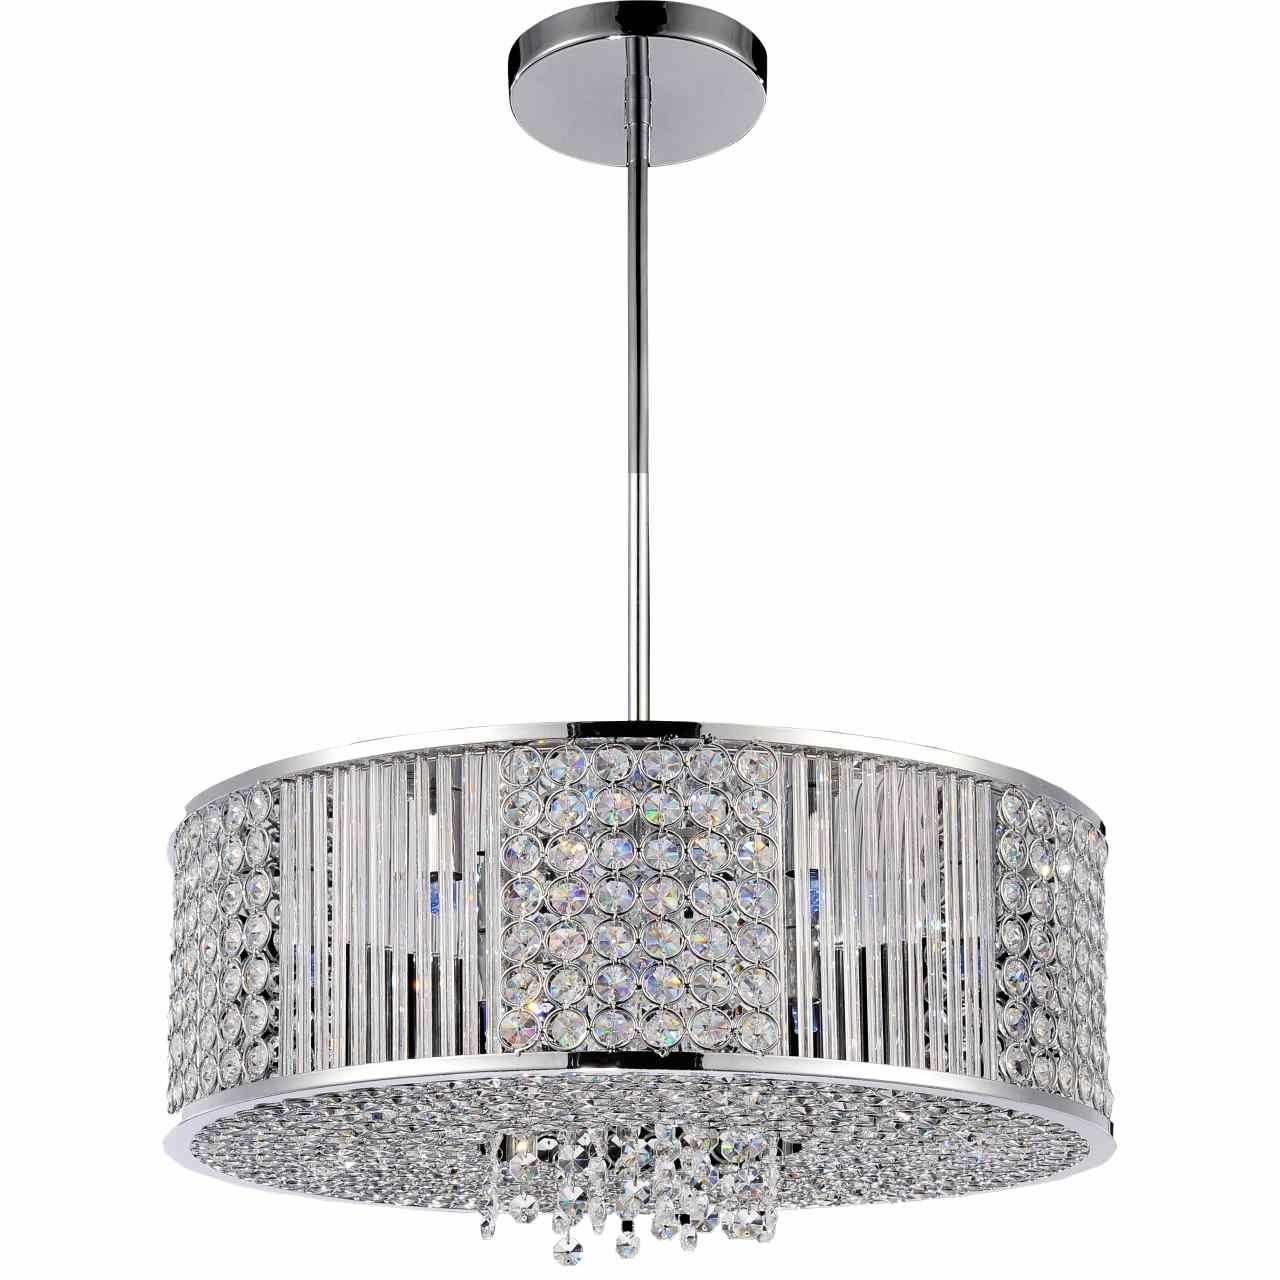 Chandelier Chrome Regarding Most Recently Released Brizzo Lighting Stores (View 15 of 15)